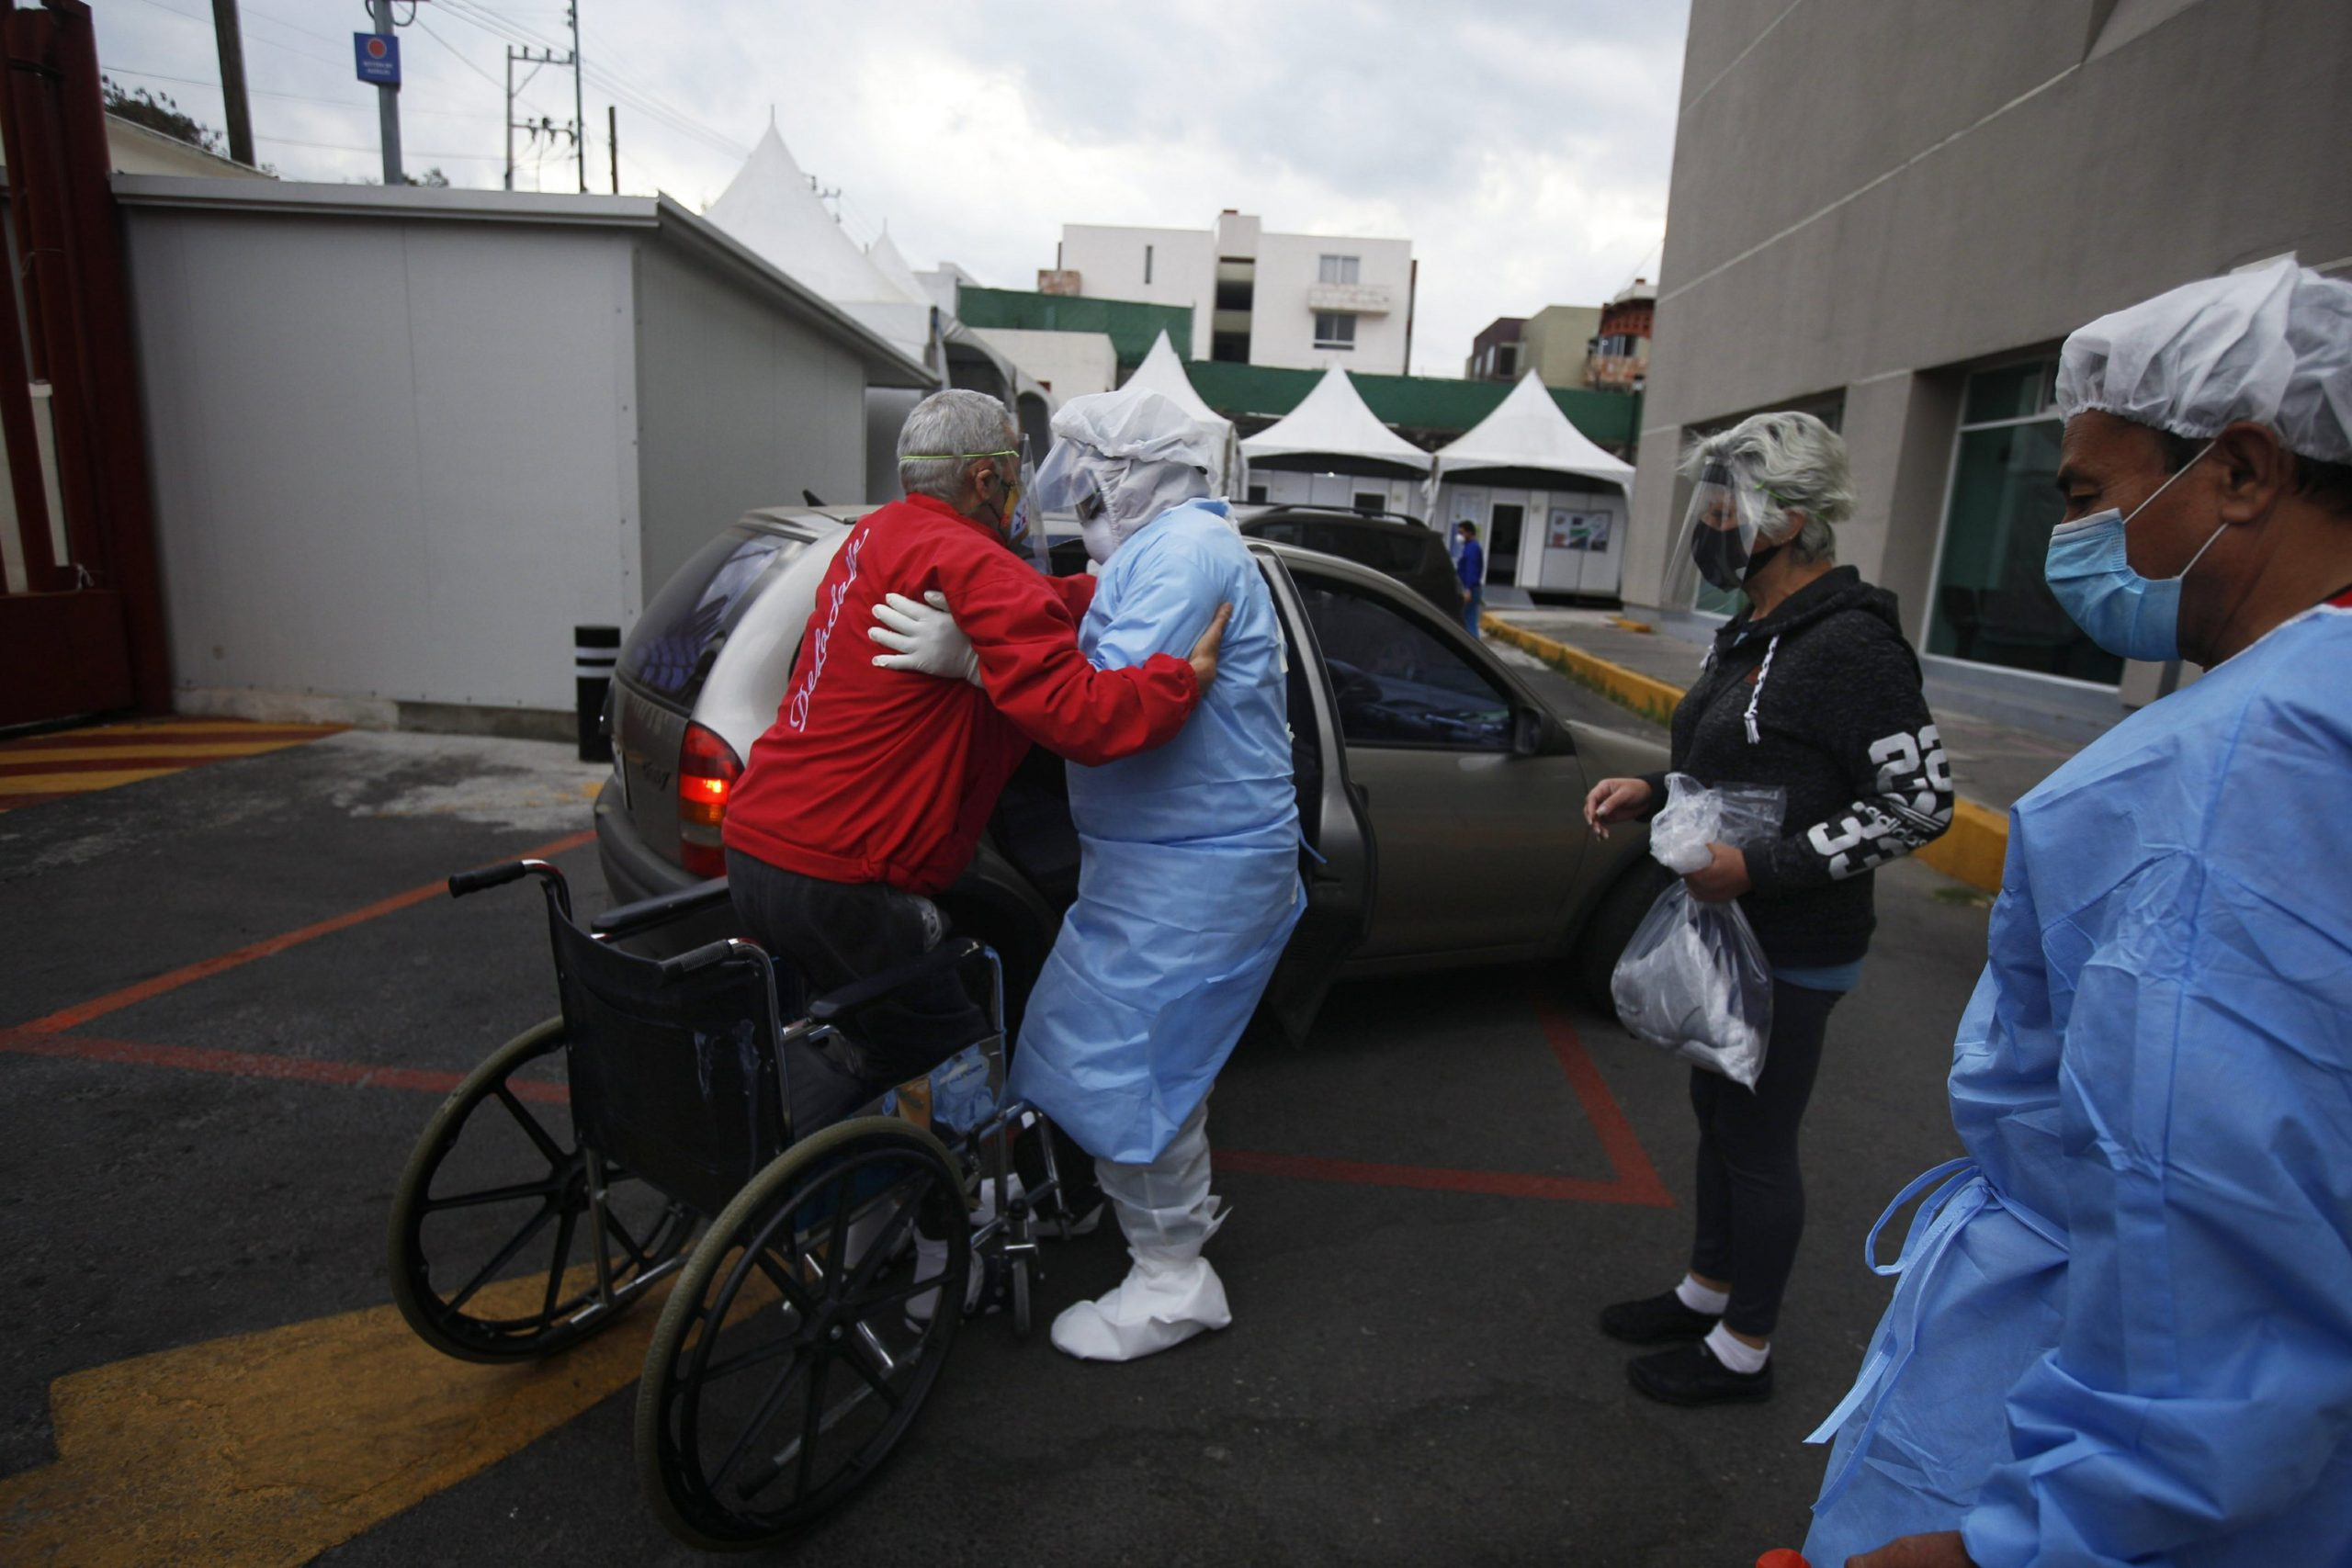 Mexico City hospitals are filled, but so are the streets